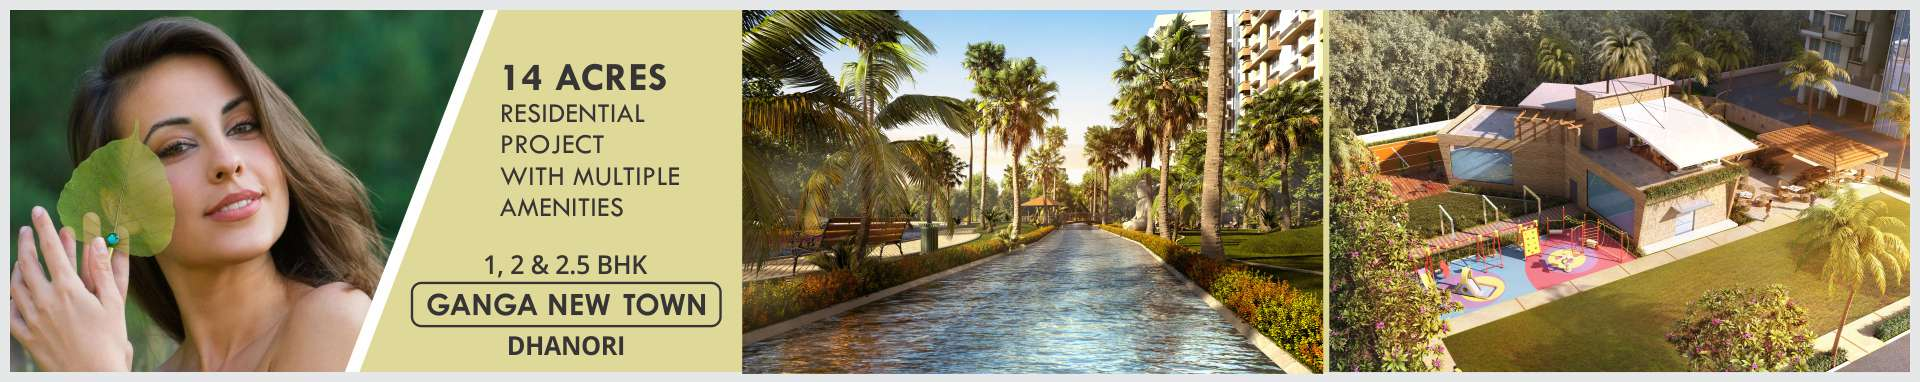 Ganga New Town - 1,2 & 2.5 bhk-property-ad.jpeg